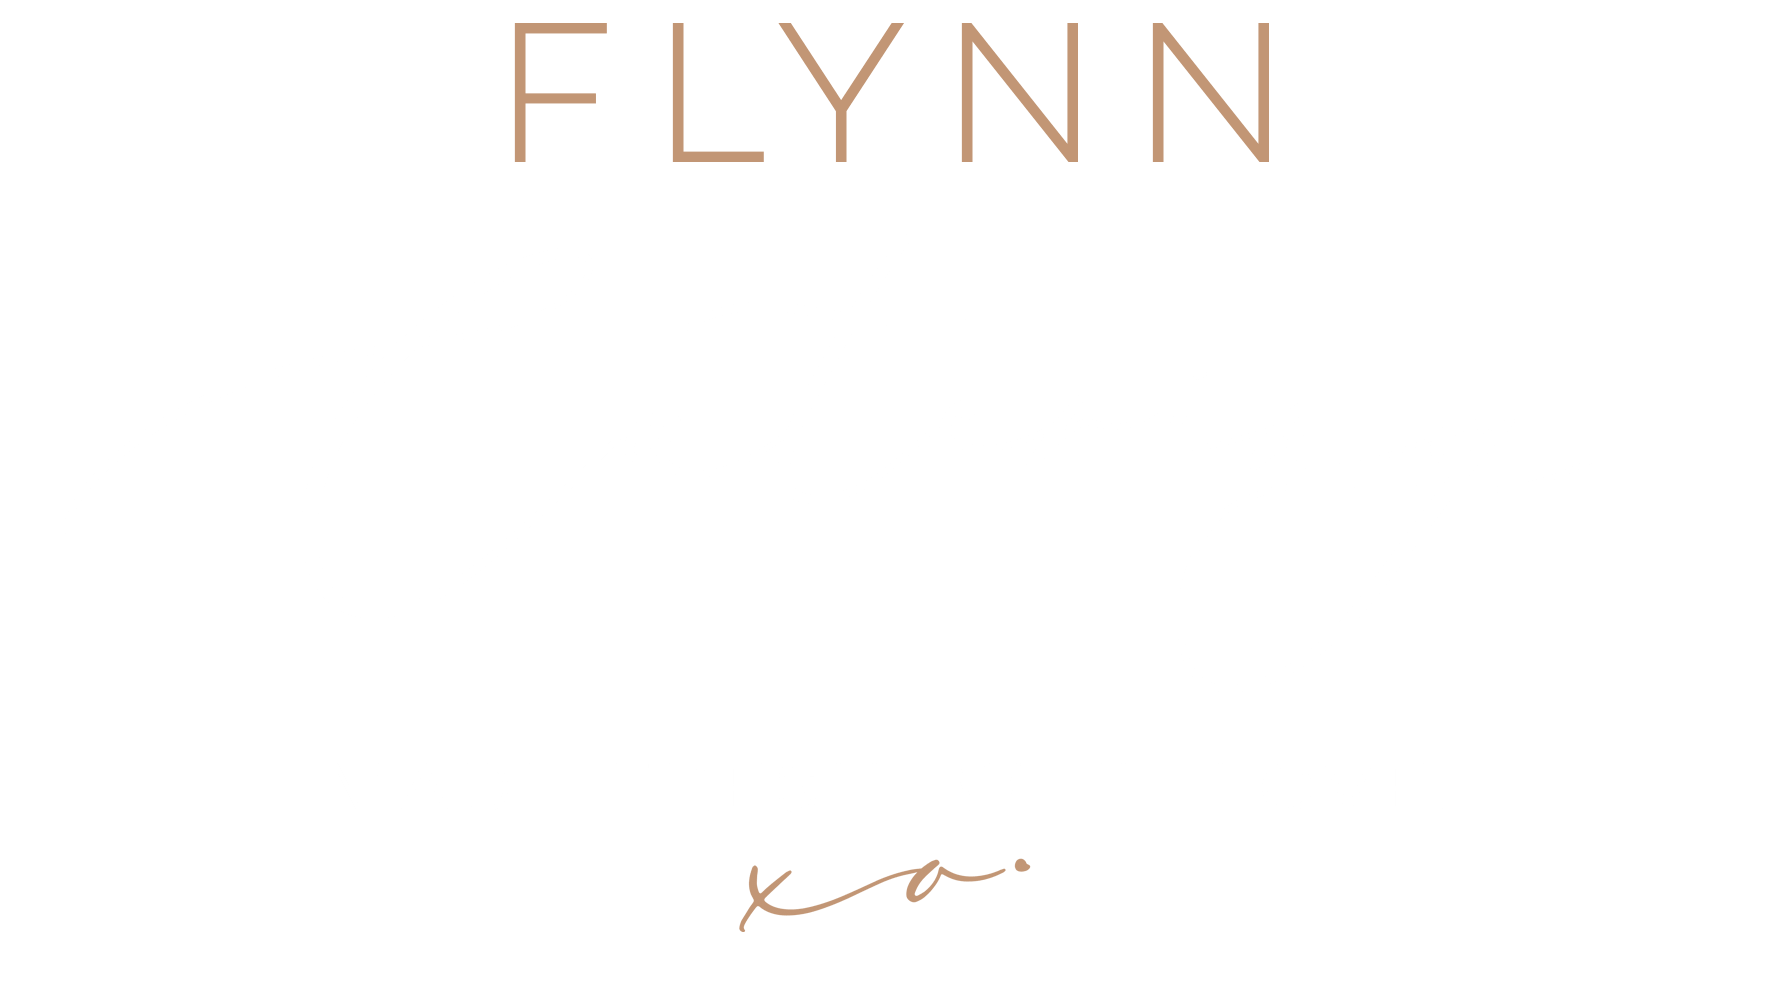 Flynn Catering. Made Fresh. XO.